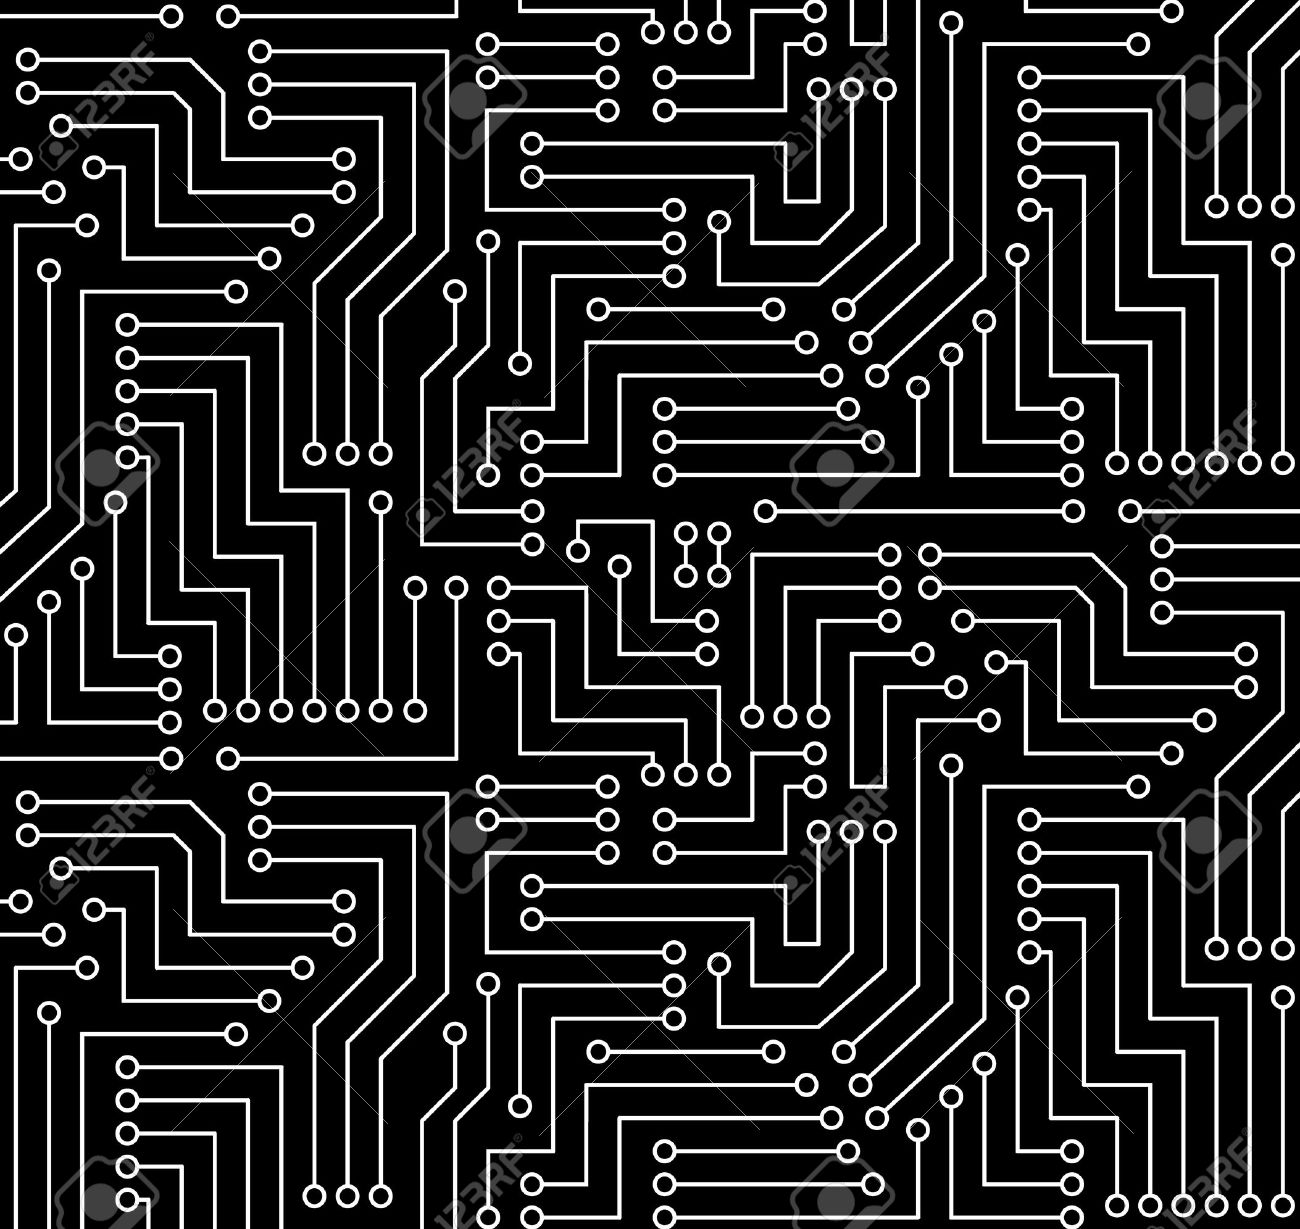 Black Circuit Printed Card And White Board Seamless With Pattern In